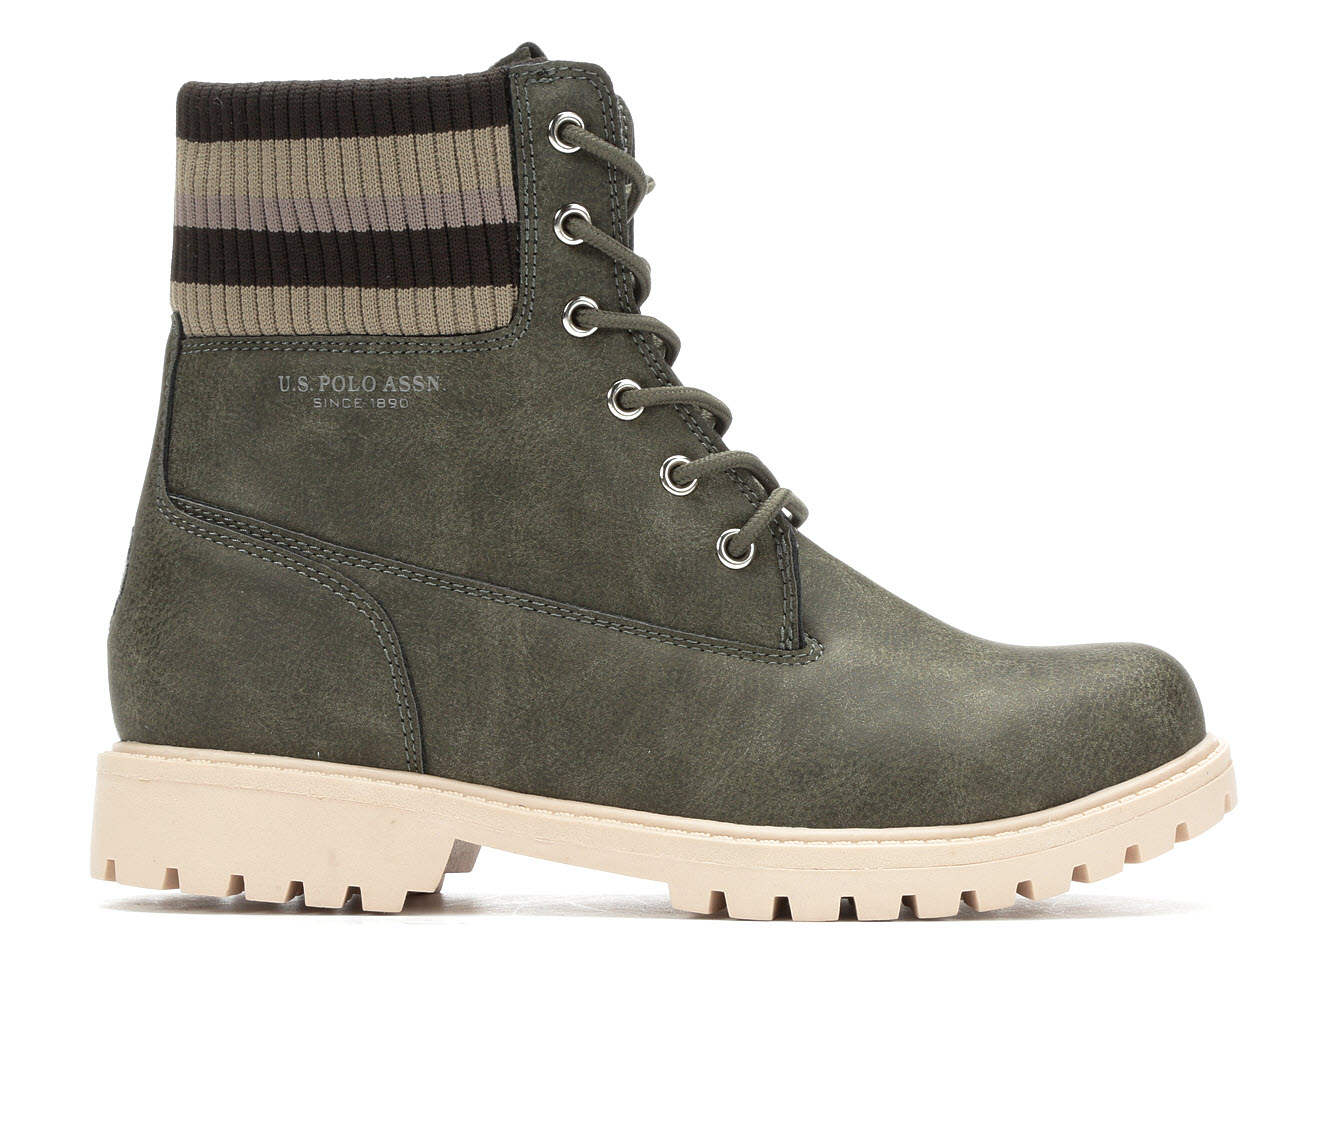 US Polo Assn Holland Women's Boots (Green - Faux Leather)